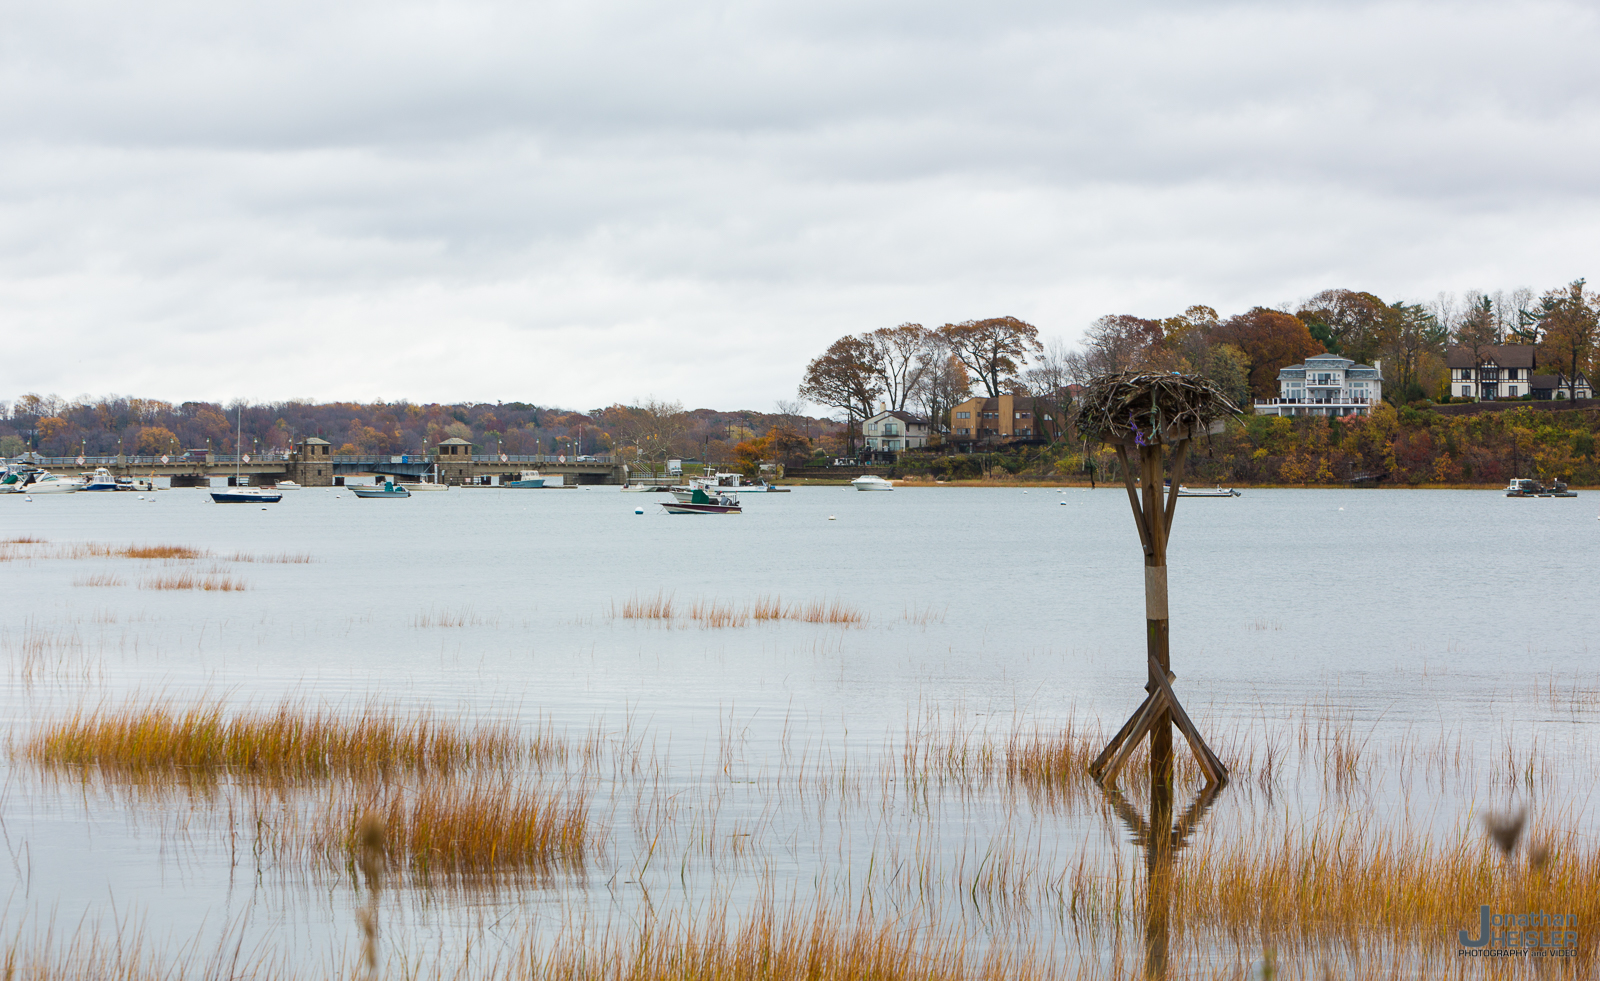 """Bayville, NY in the fall is what Long Island is all about, as the town deviates from the typical """"snotty""""upscale character many North Shore towns have become. It's an evolved 1950's summer cottage town with an active oyster and clam business. The town is nestled between Oyster Bay, Lattingtown, and Locust Valley. It's always a pleasure to visit Bayville for drinks, dinner, biking, driving, or just walking around."""